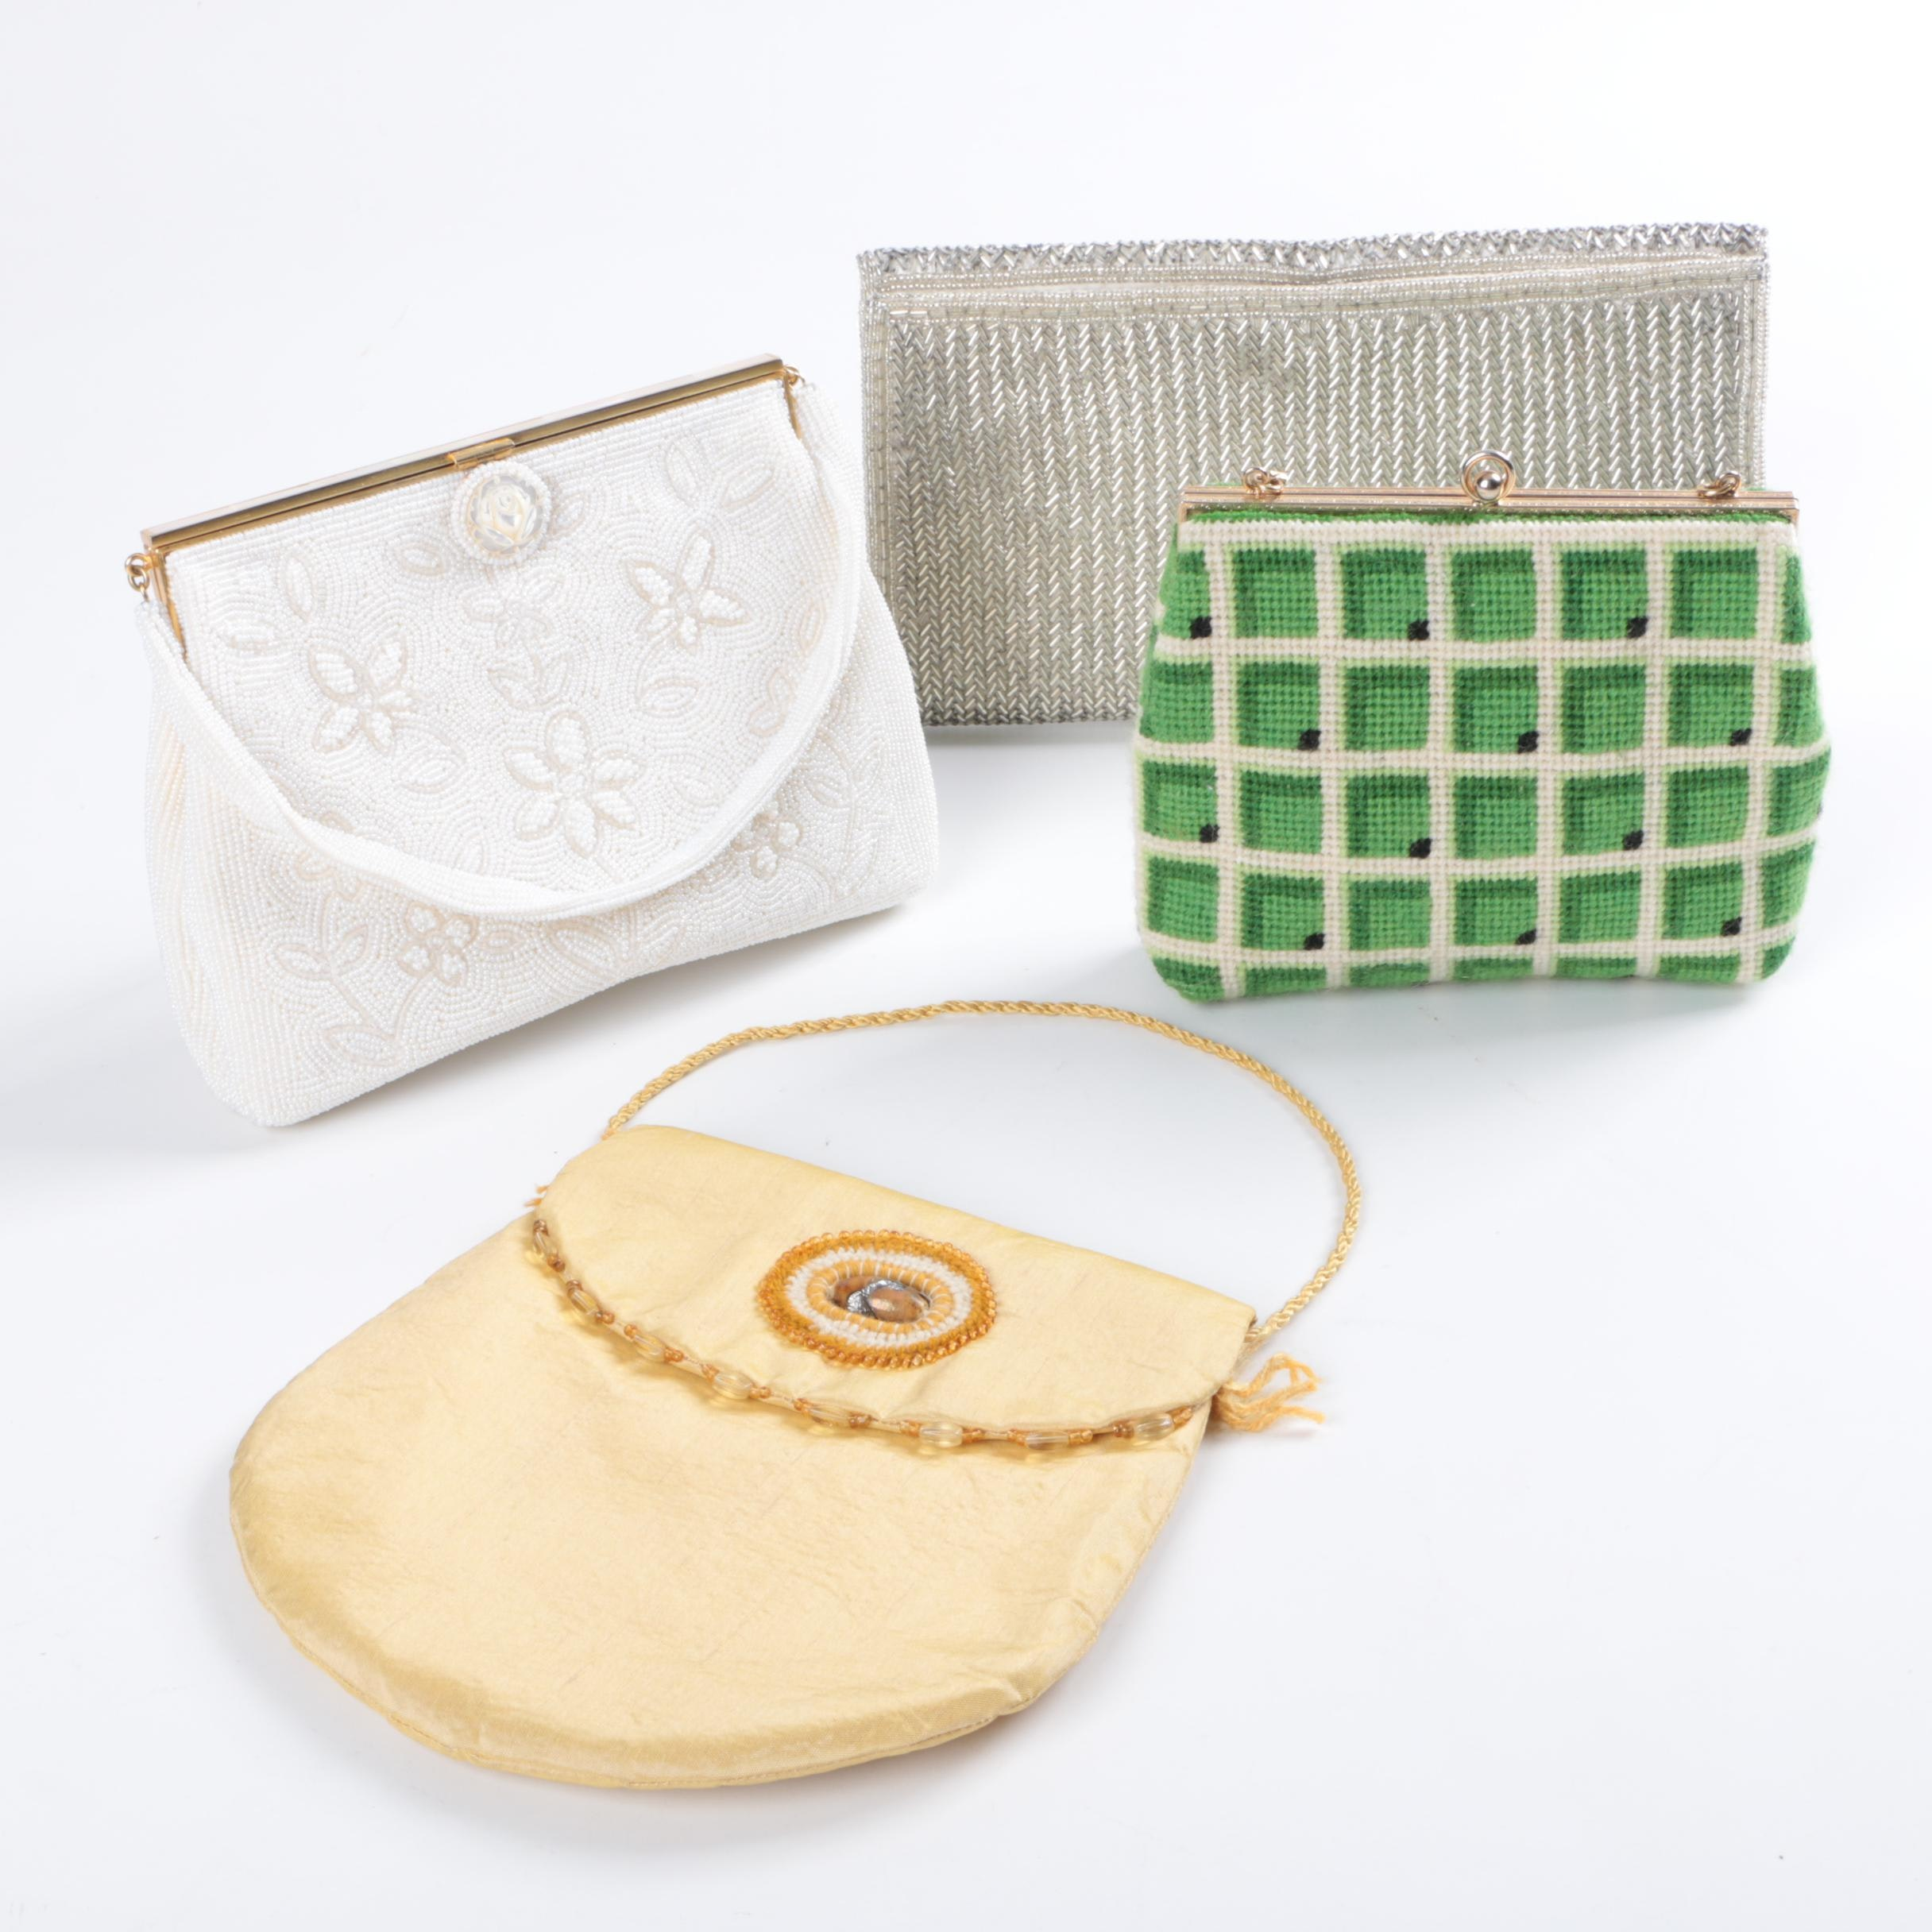 Vintage Evening Bags With Josef